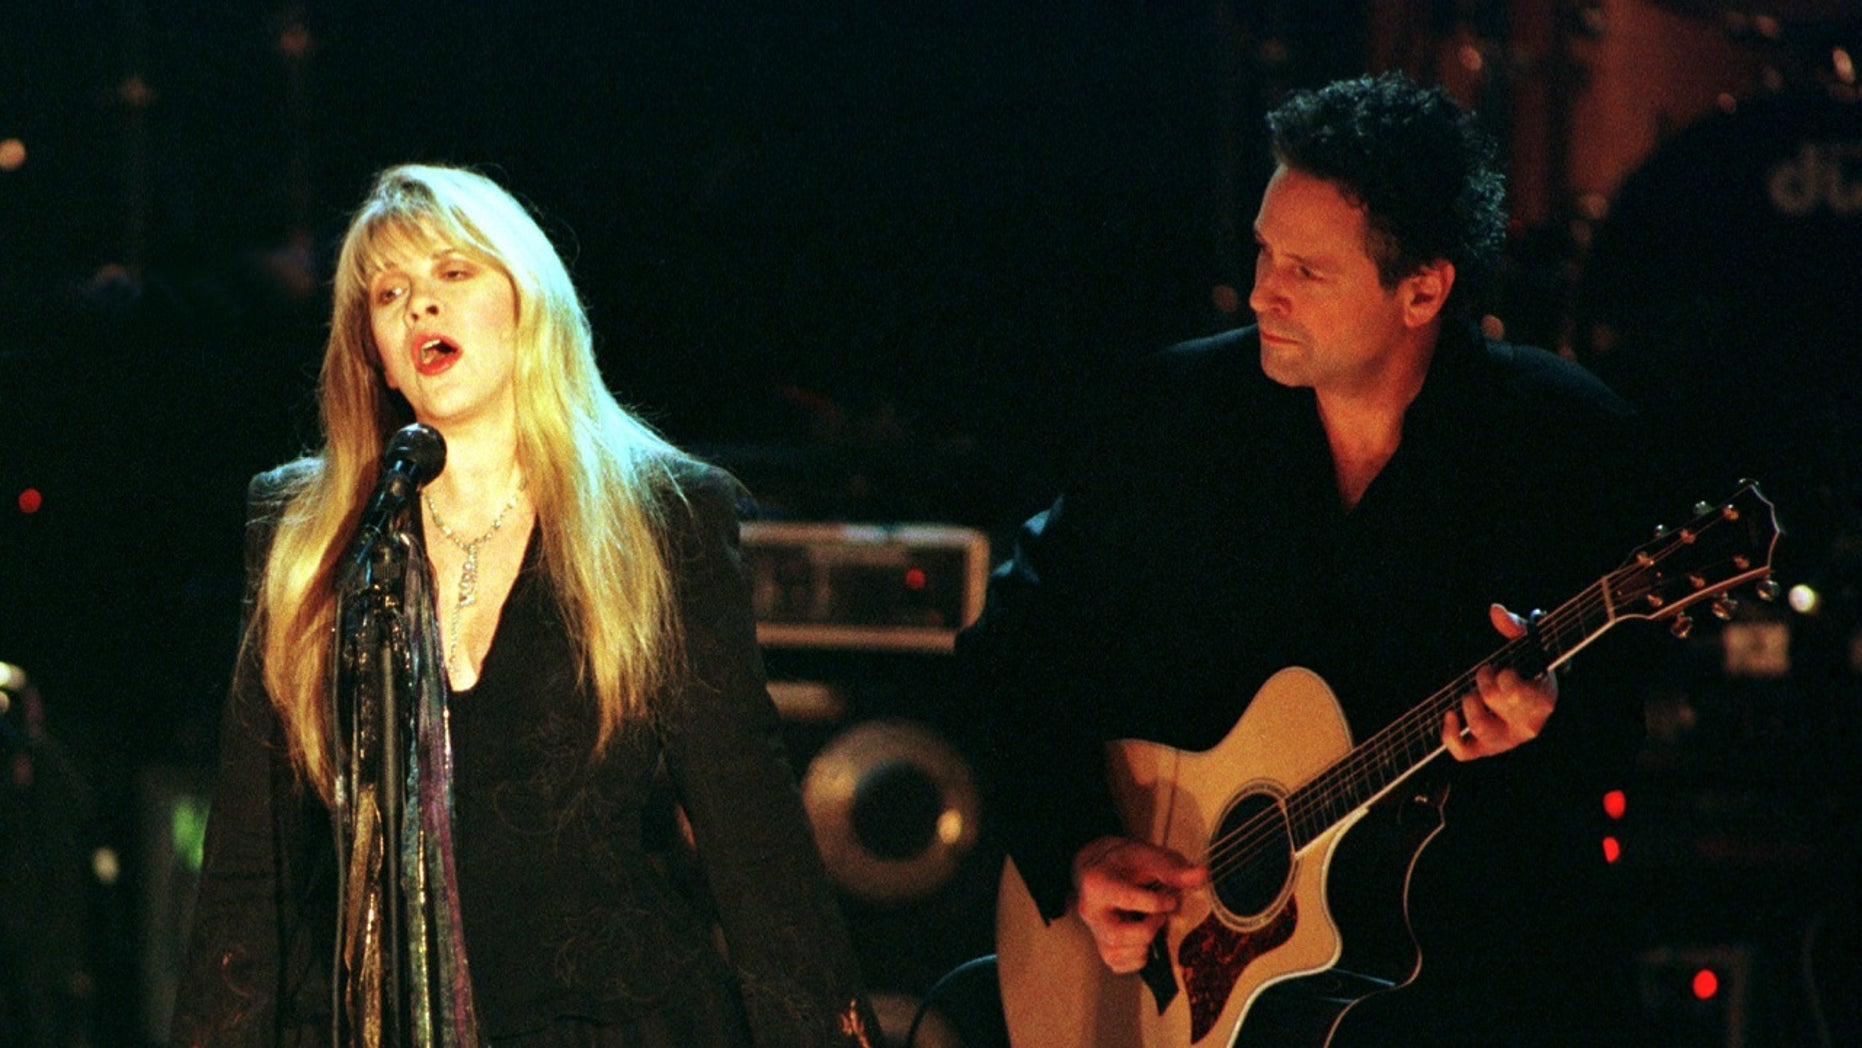 """A Fleetwood Mac tune from the 1977 album """"Rumors"""" is charting after it was part of a meme posted on Twitter late last month, Billboard reported Tuesday. Pictured are band members Stevie Nicks and Lindsey Buckingham."""